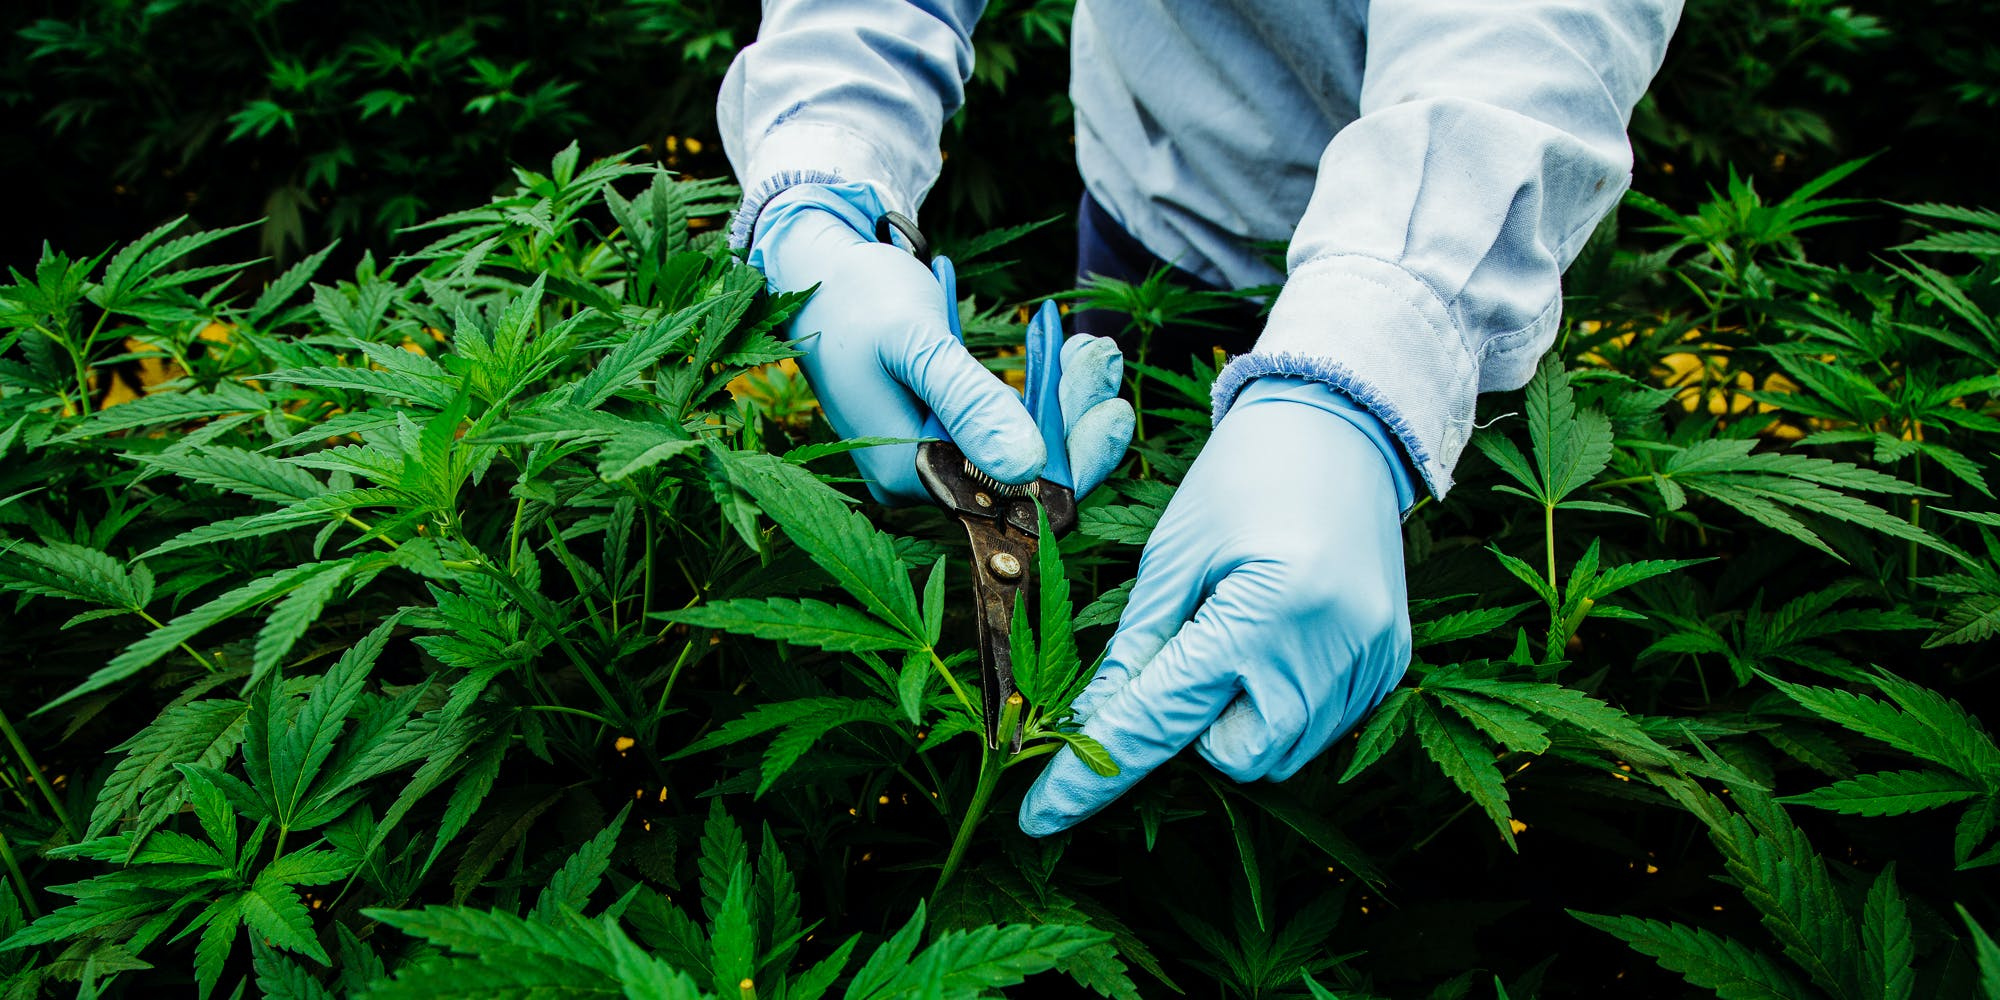 A worker at Pharmacielo trimming cannabis